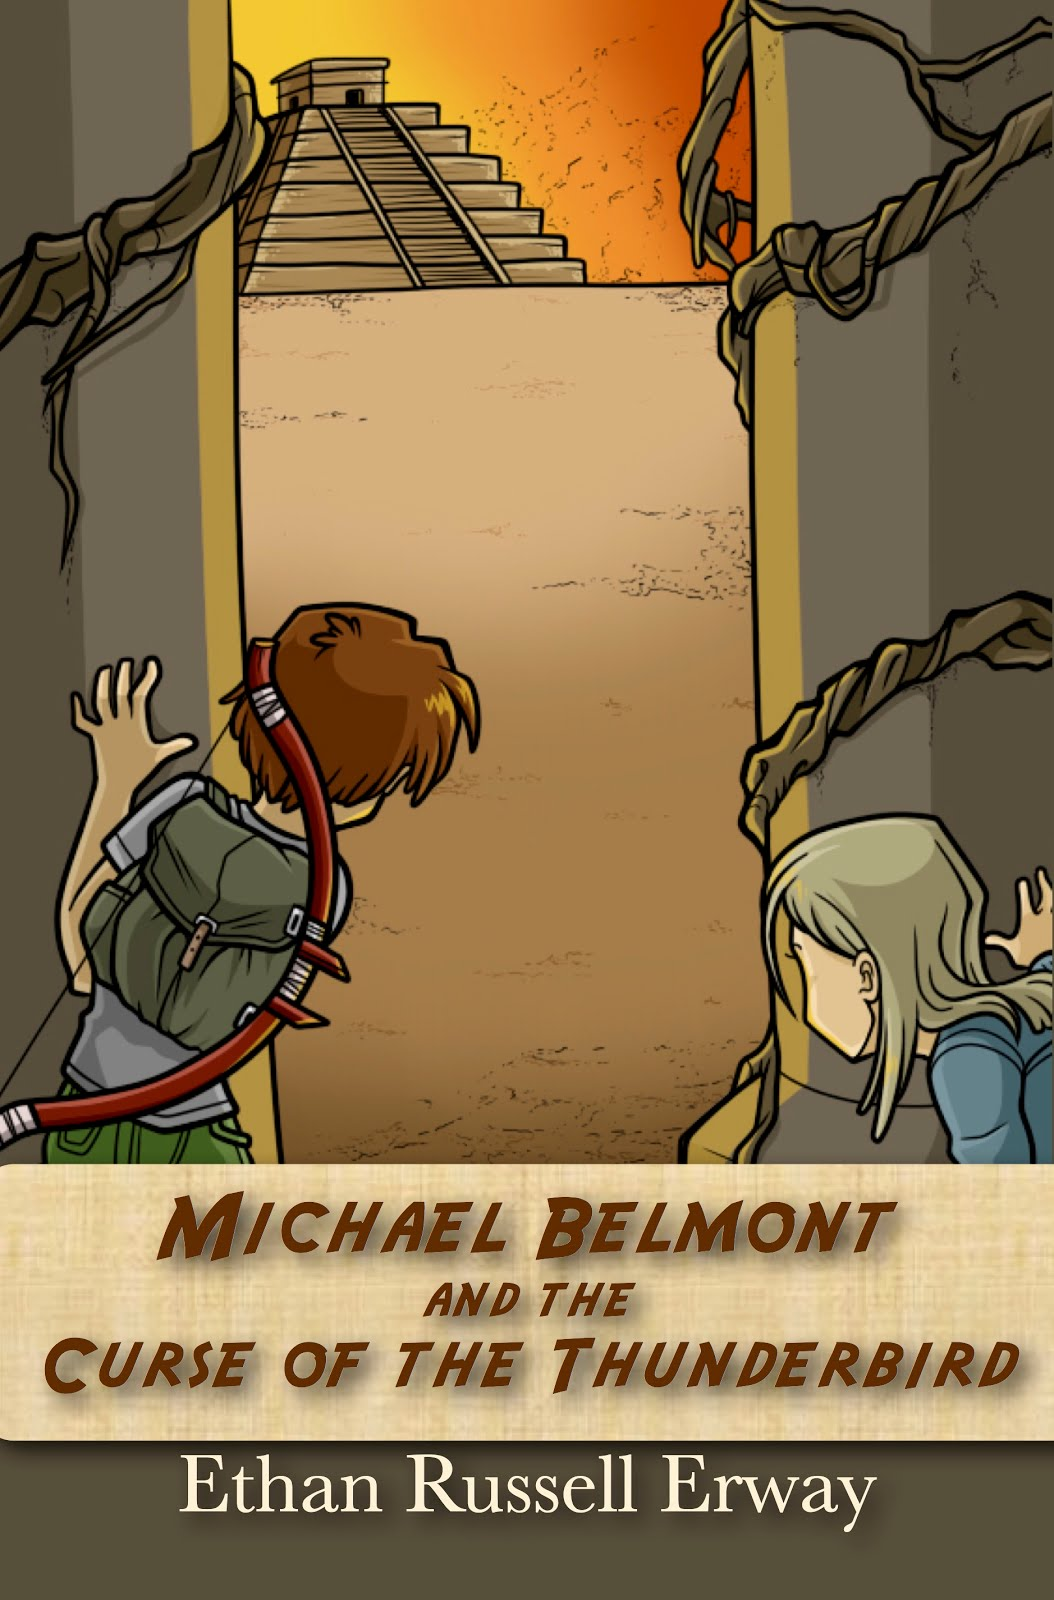 Michael Belmont and the Curse of the Thunderbird